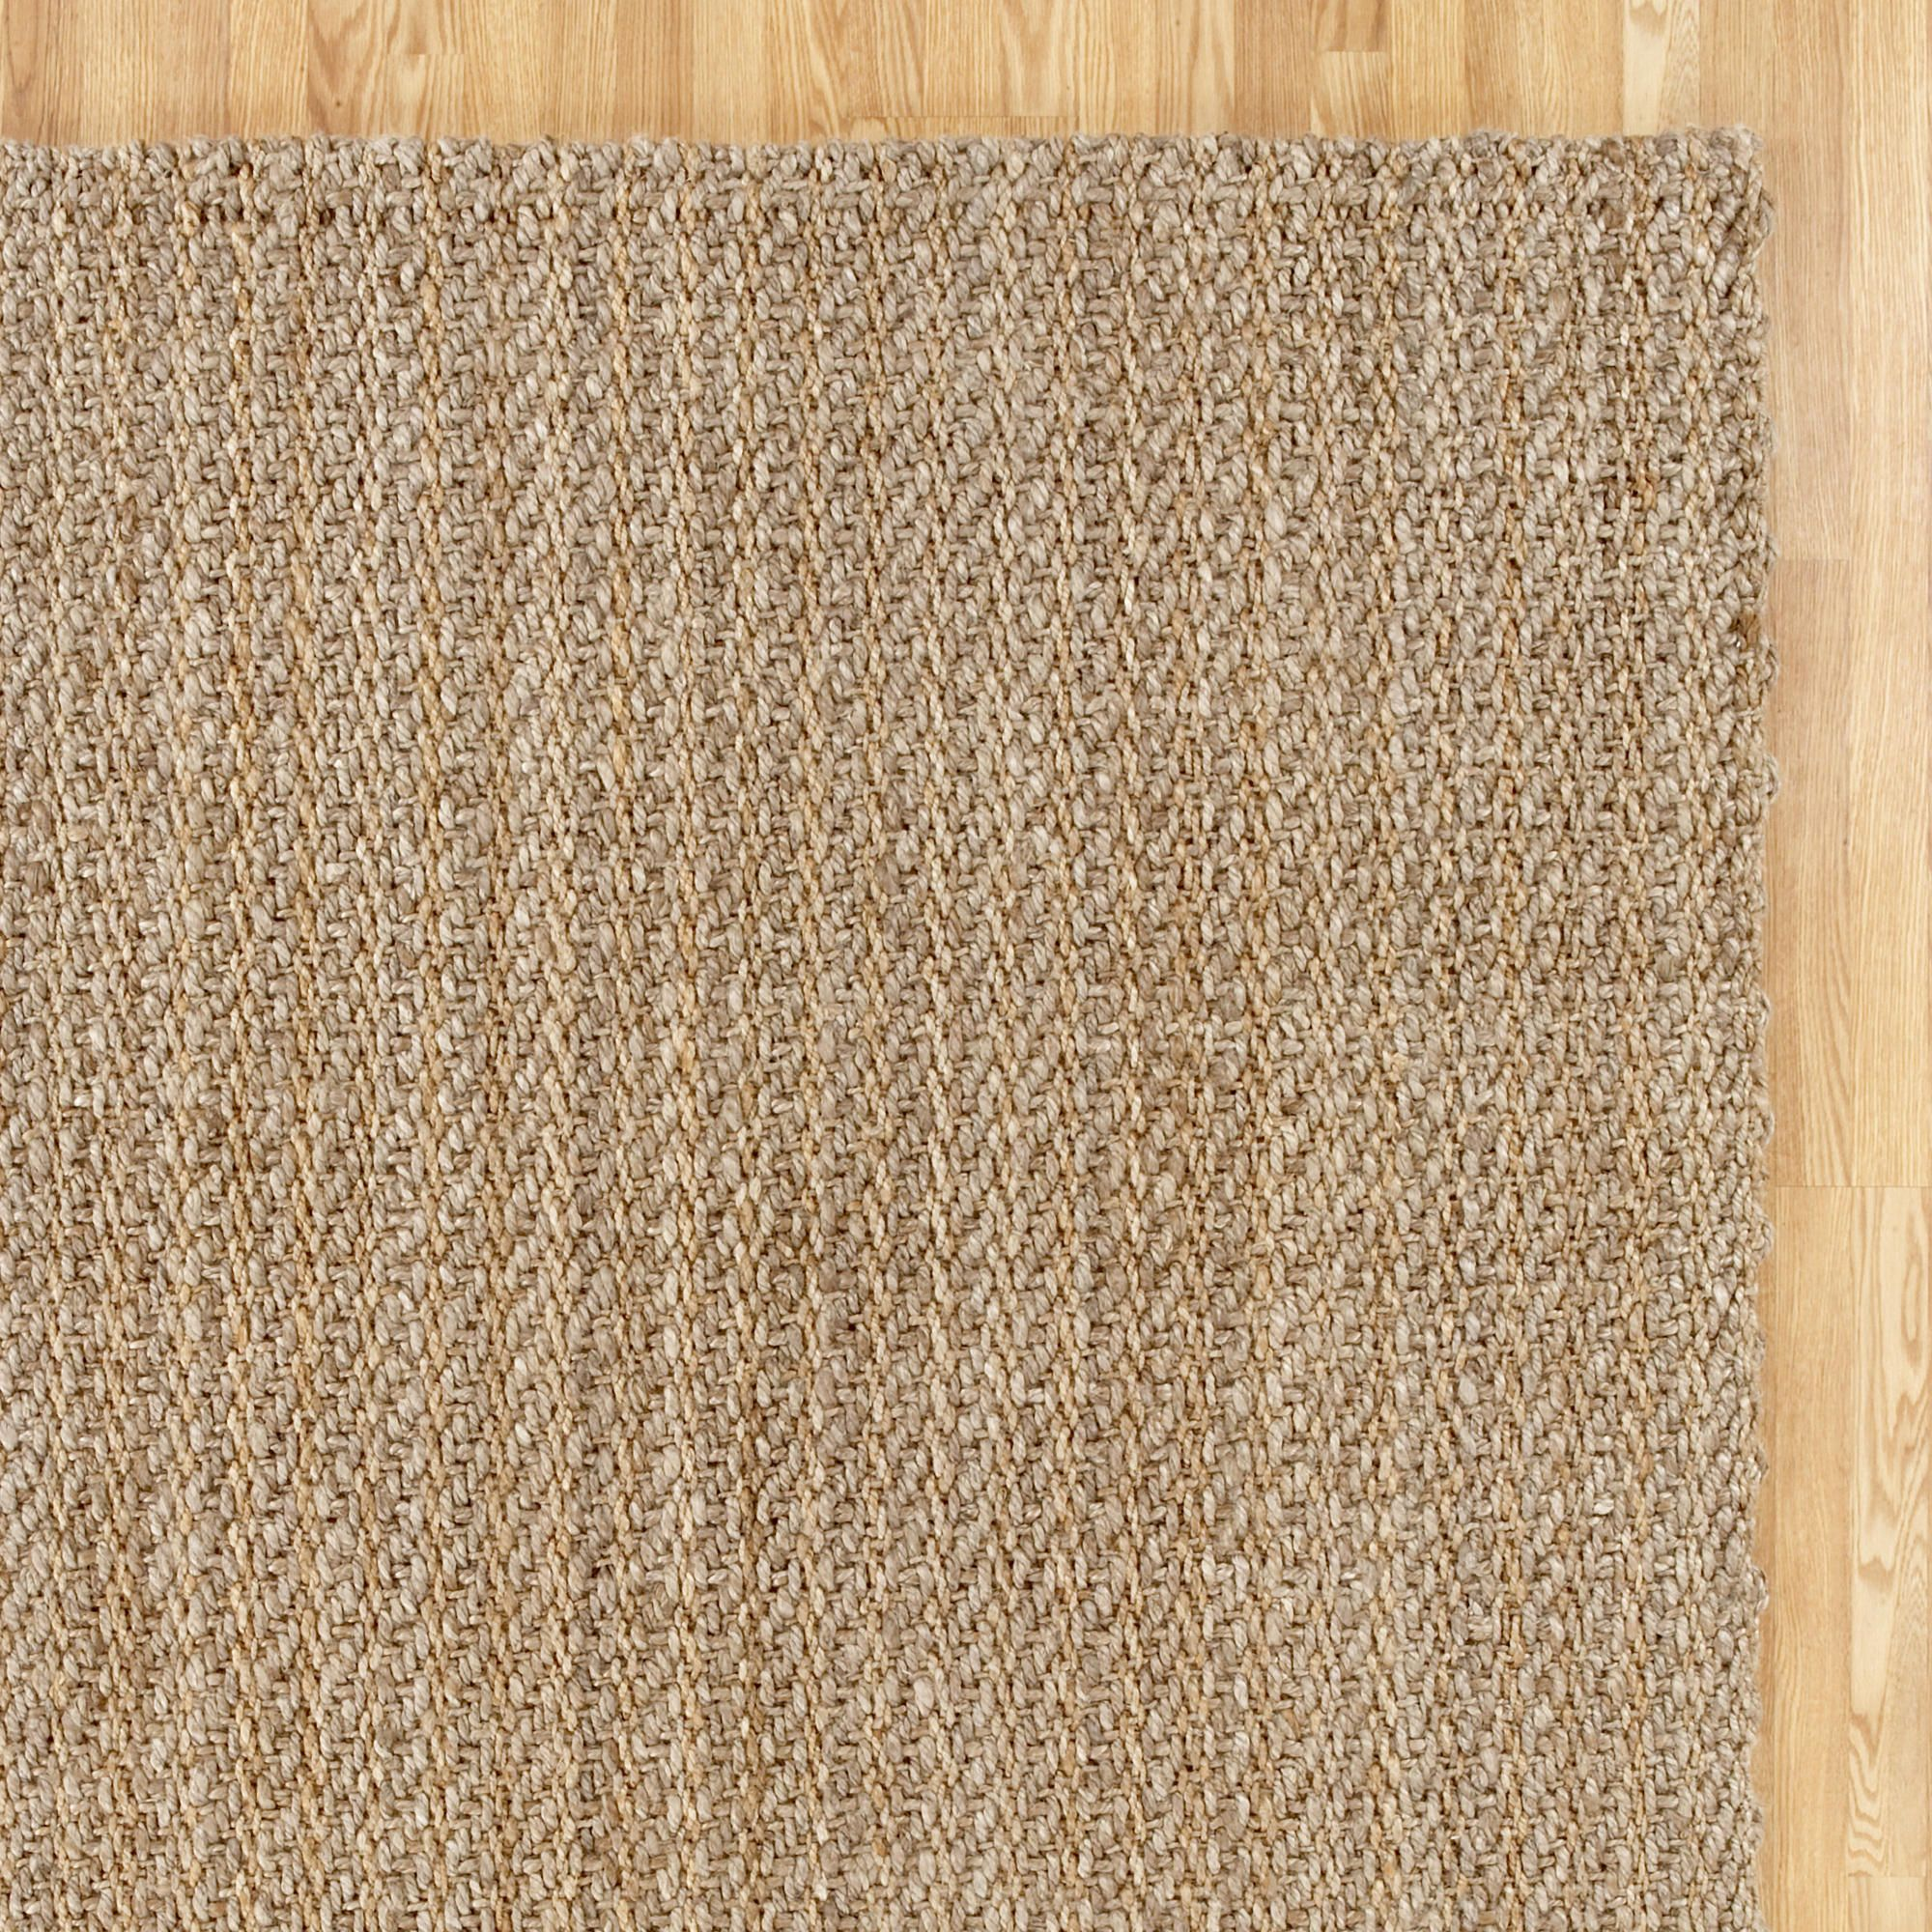 x chunky home shipping product hand jute woven natural fiber overstock safavieh runner free today garden rug